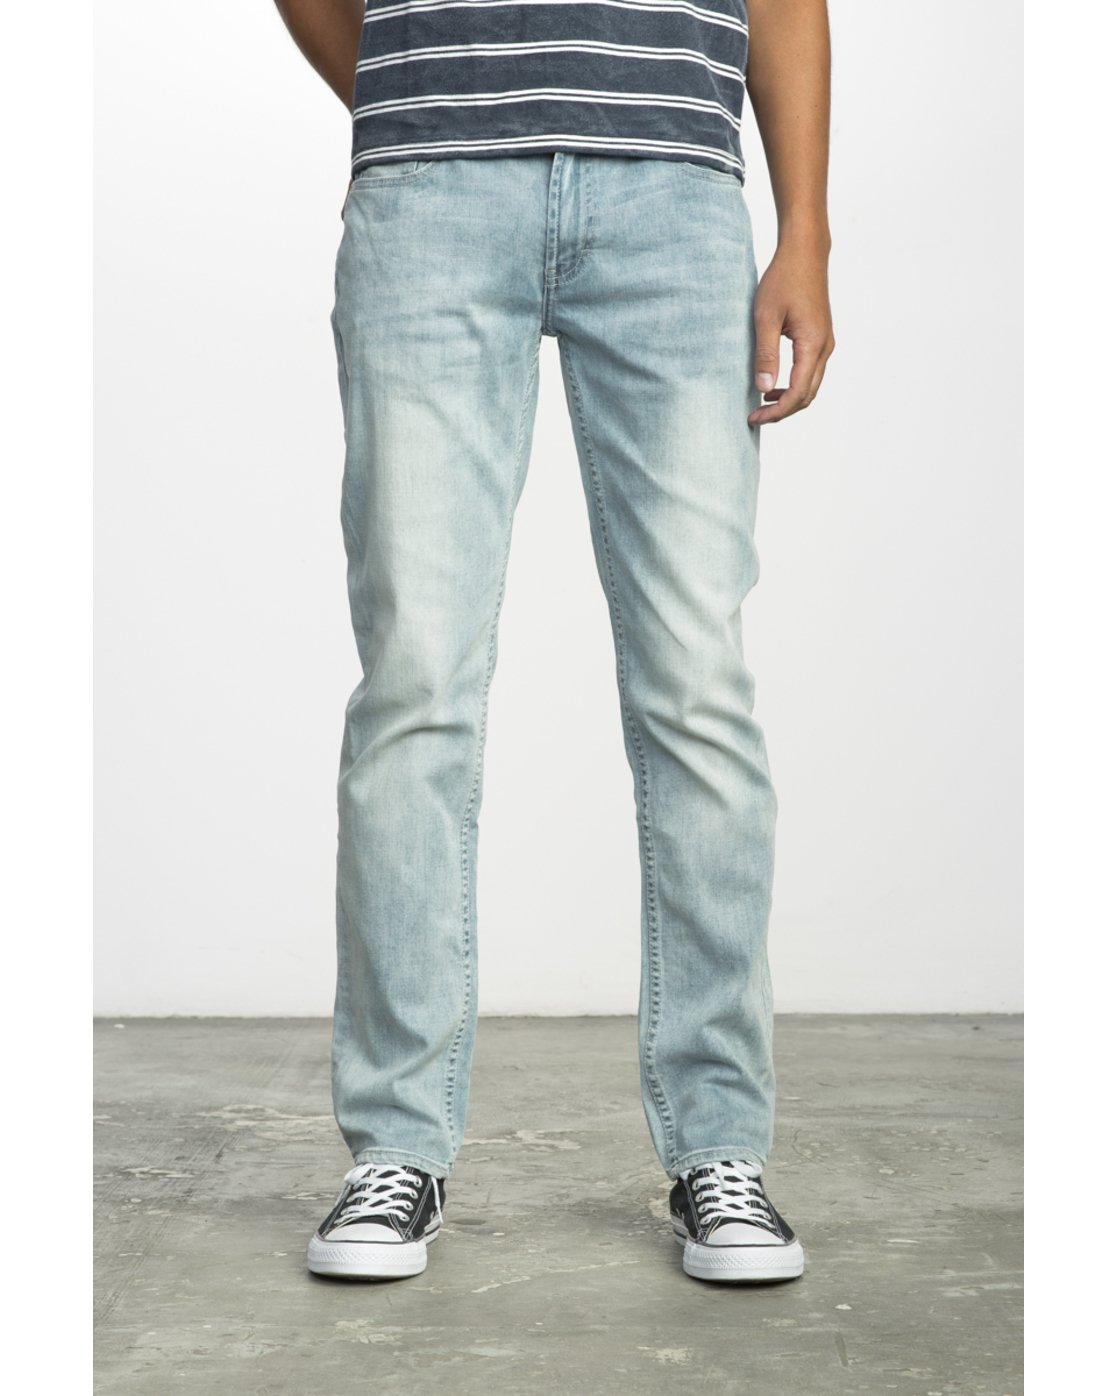 0 HEXED DENIM Blue F1PNSBRVF7 RVCA